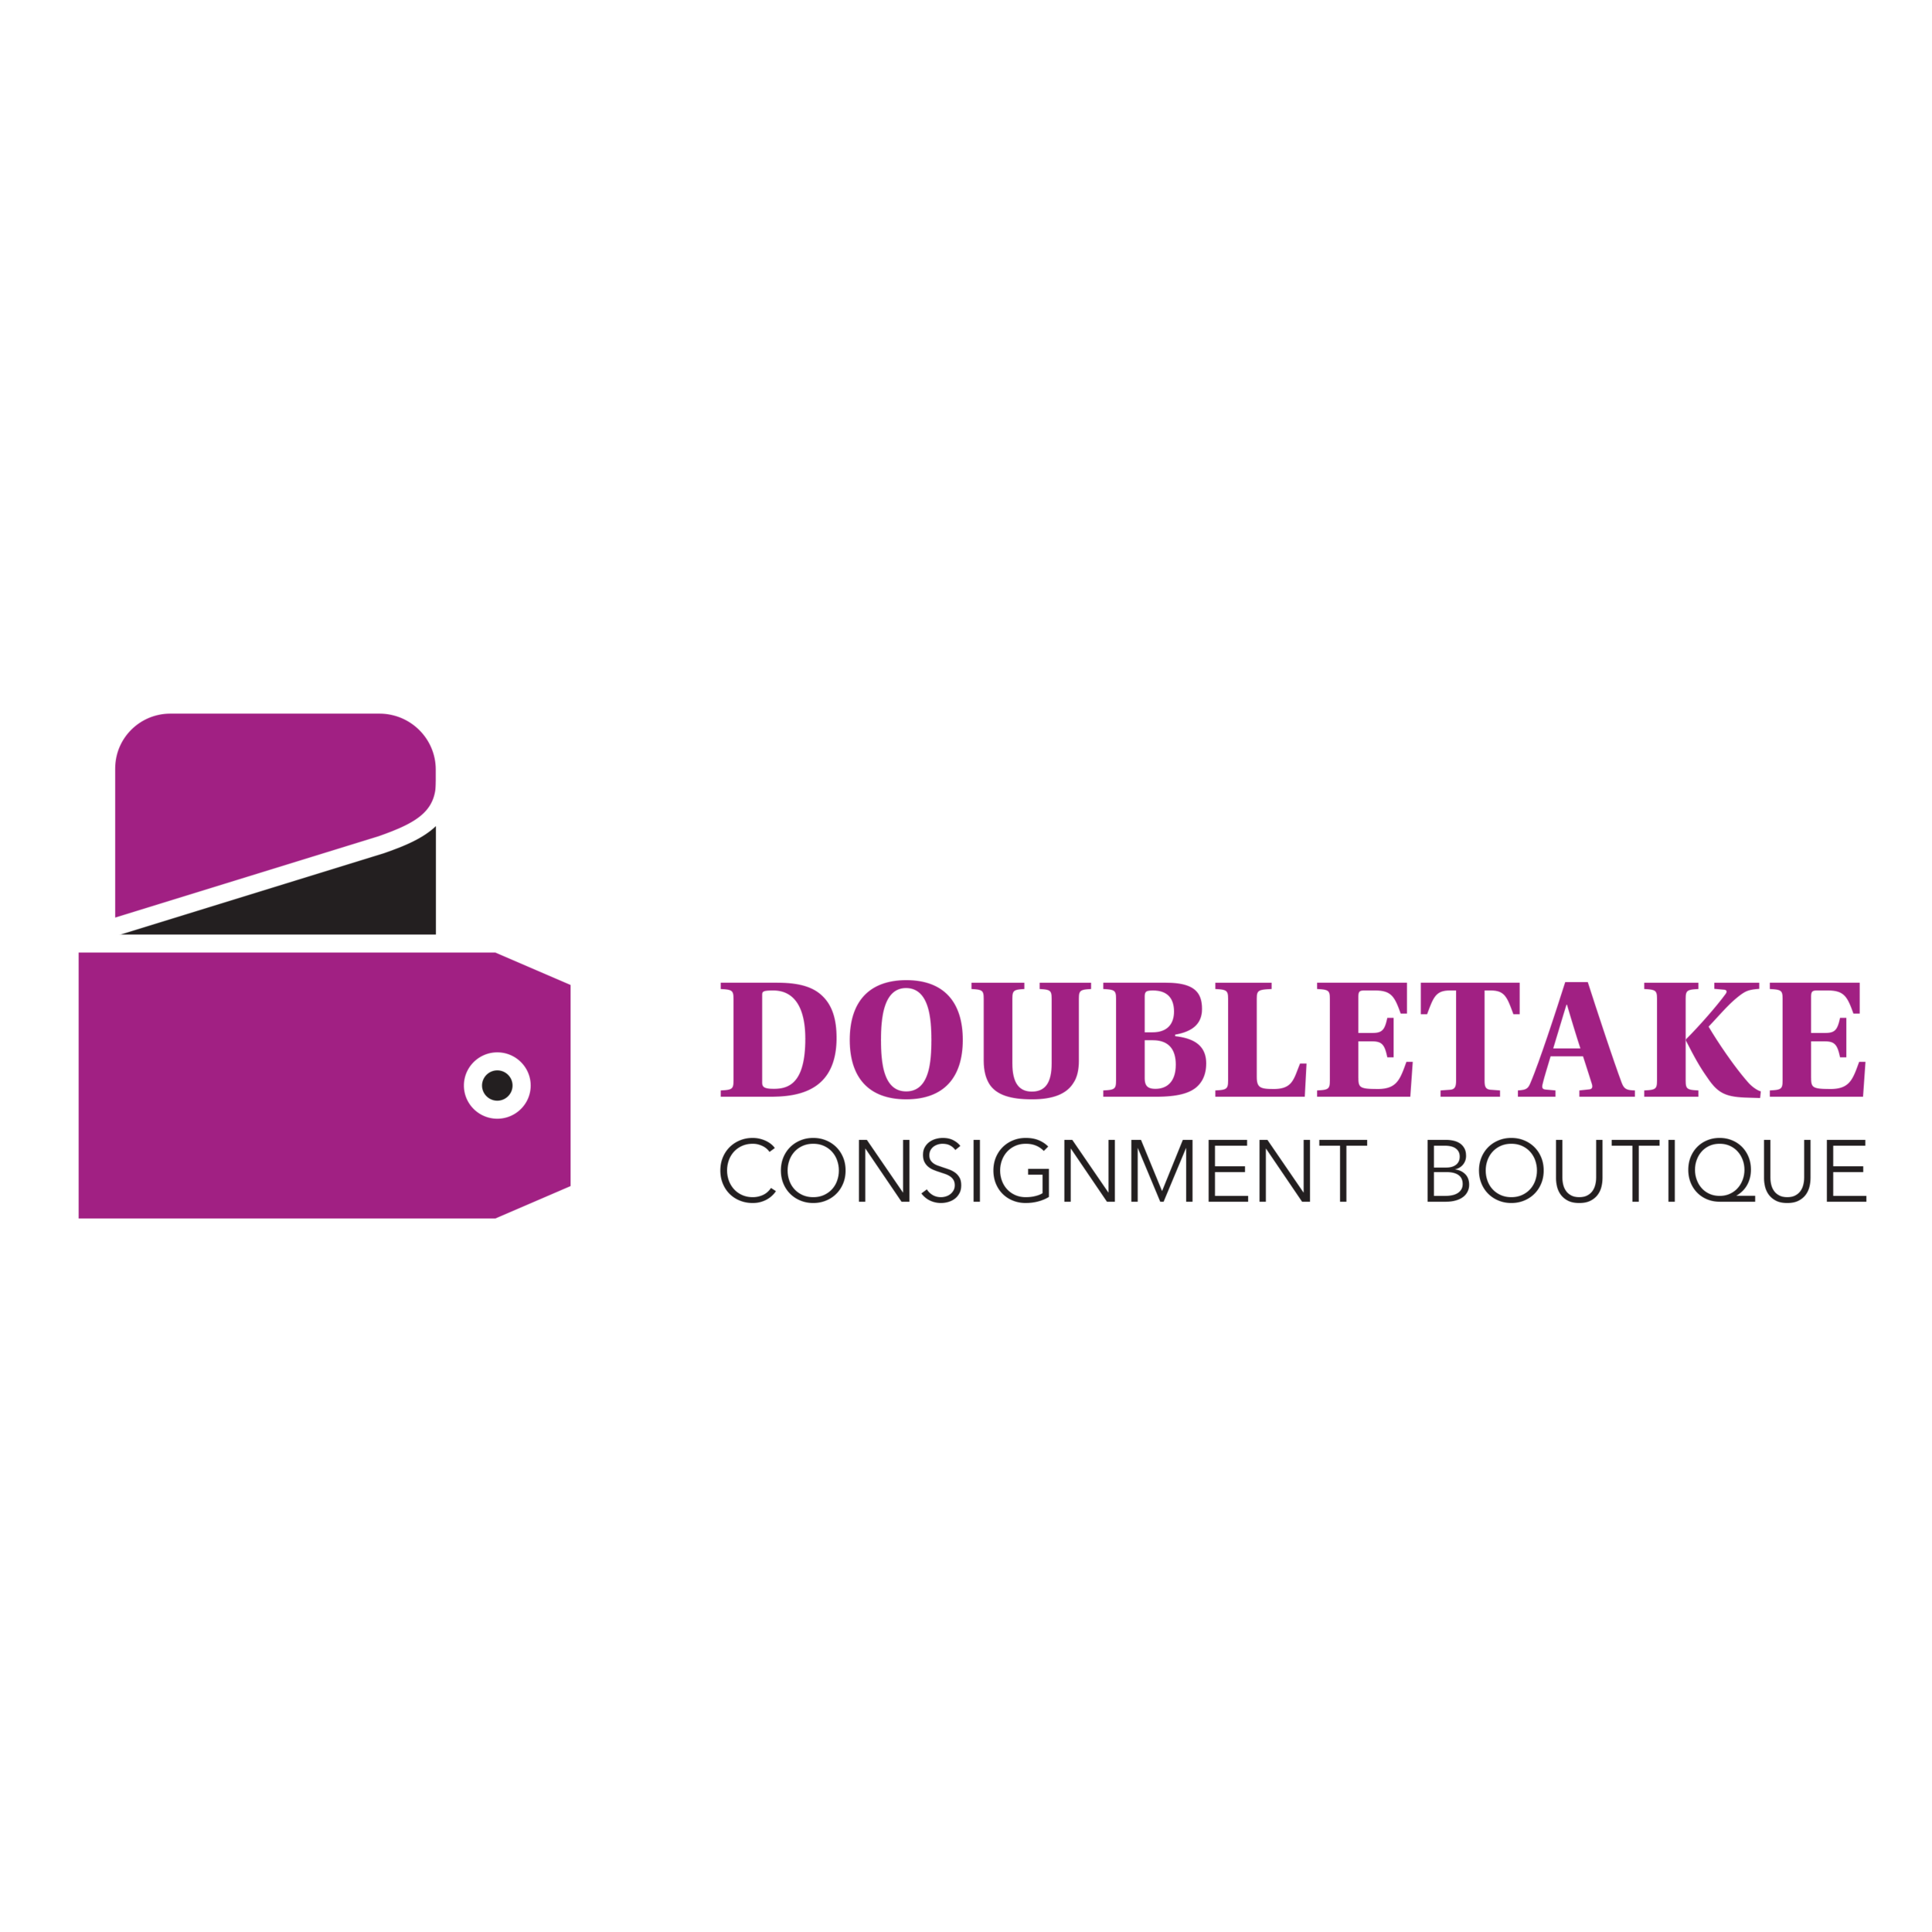 doubletake consignment boutique  DoubleTake is an upscale consignment store which provides a fashion forward recycling concept for women where they  can purchase high end and department store brands at a fraction of the cost.